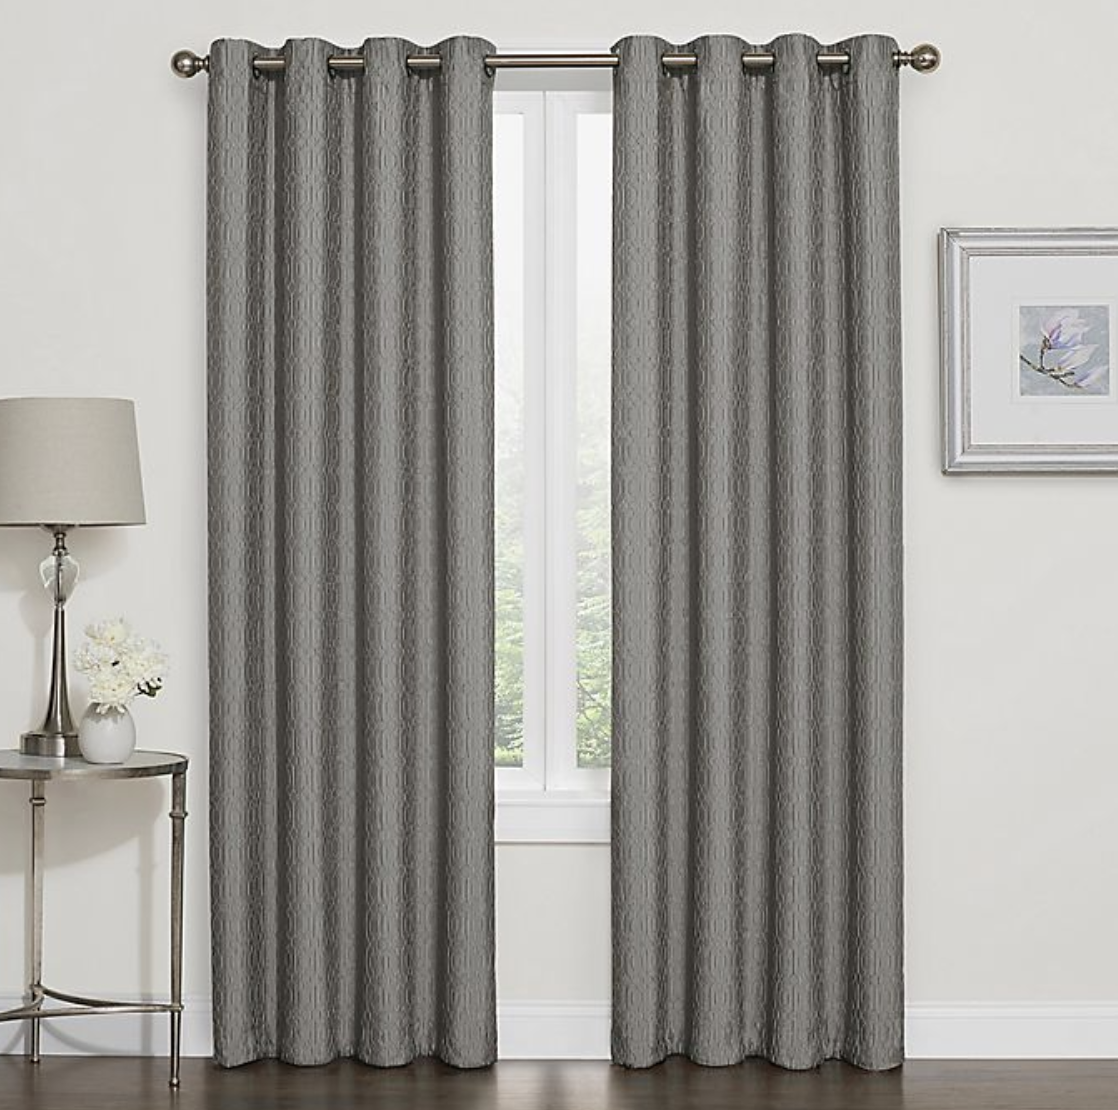 Outdoor Decor Gray Width 52 By Length 45 Pony Dance Short Blackout Curtains Grey Thermal Insulated Window Curtain Treatments Light Block Energy Saving Drapes Eco Friendly For Bedroom 2 Panels Patio Lawn